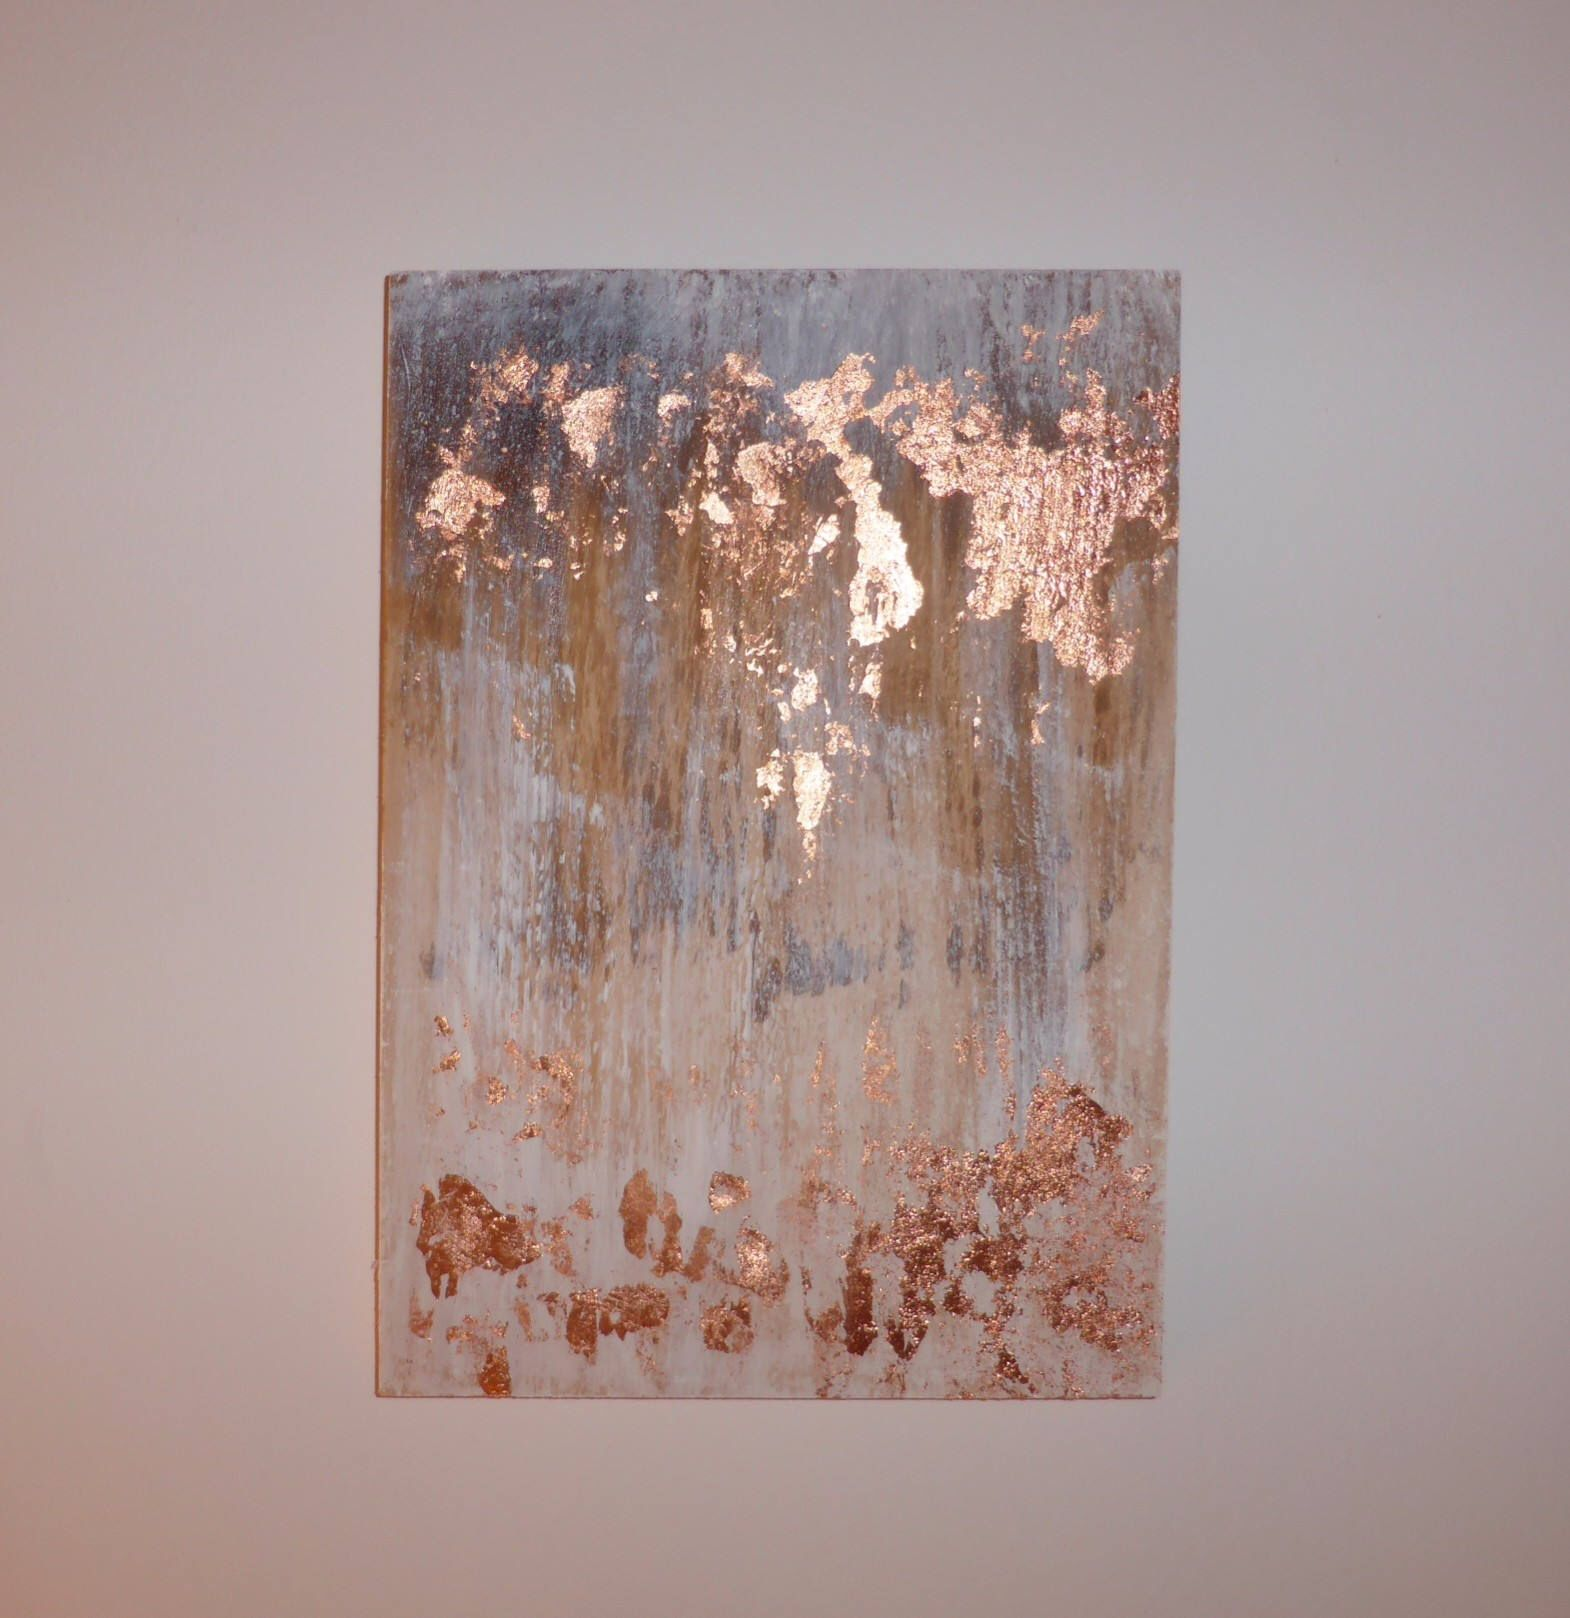 Oil Paint With Copper Leaf On Wood Brown White Rose Gold Colored